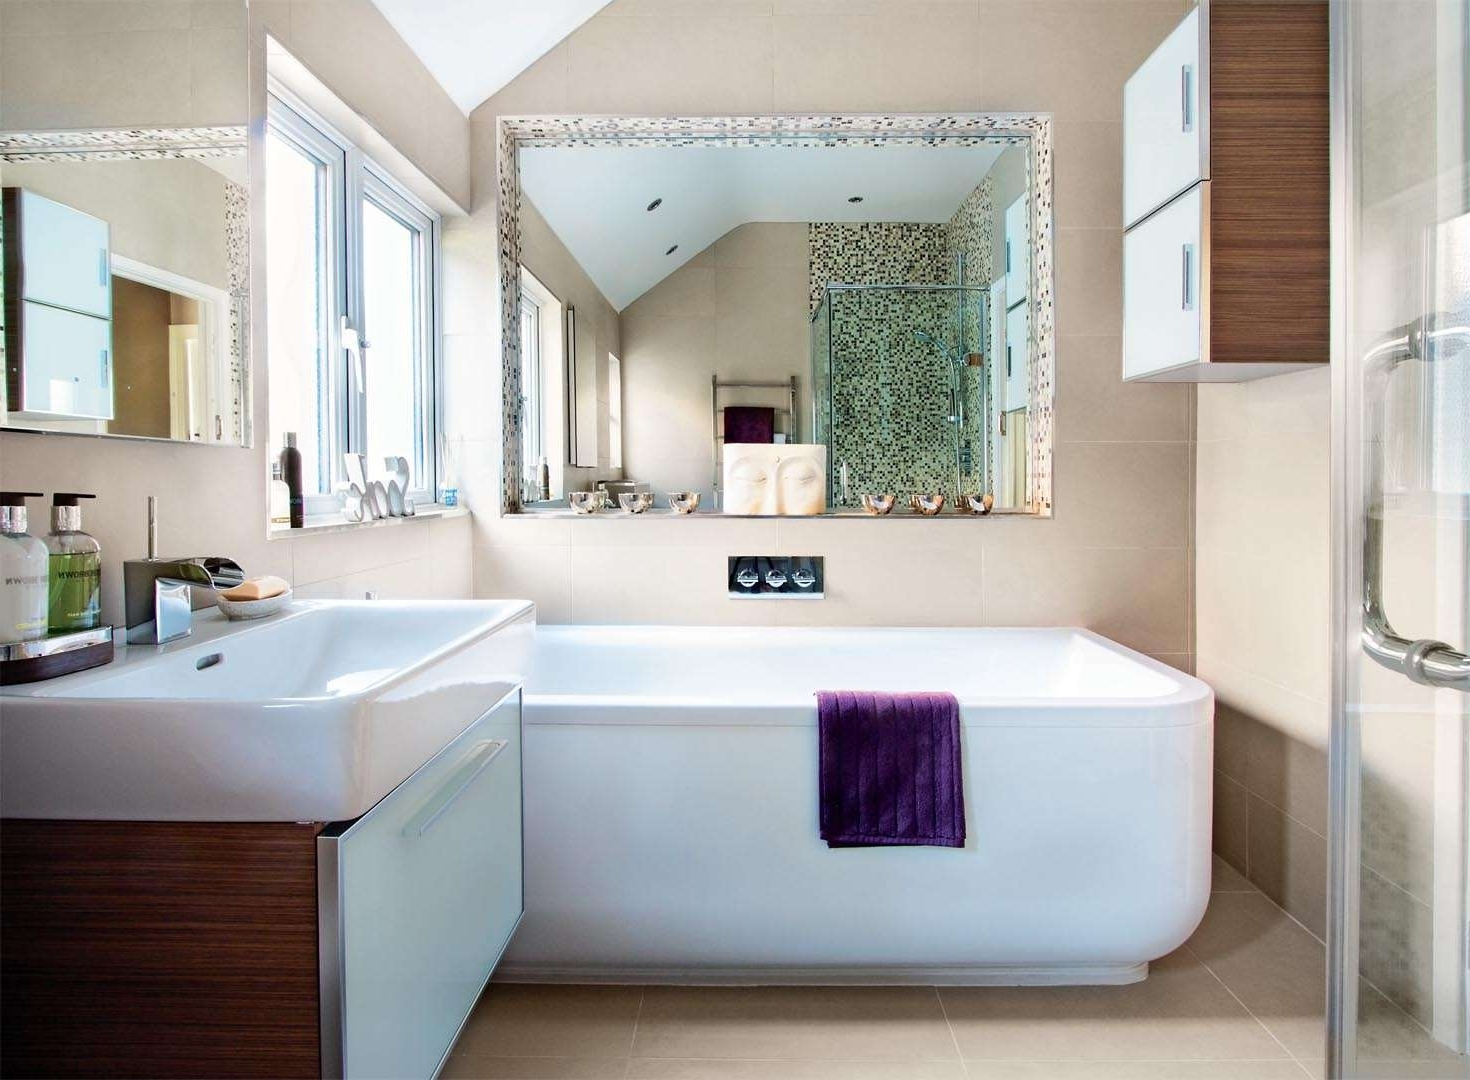 Deluxe Contemporary Bathroom Interior Decor (Image 2 of 8)